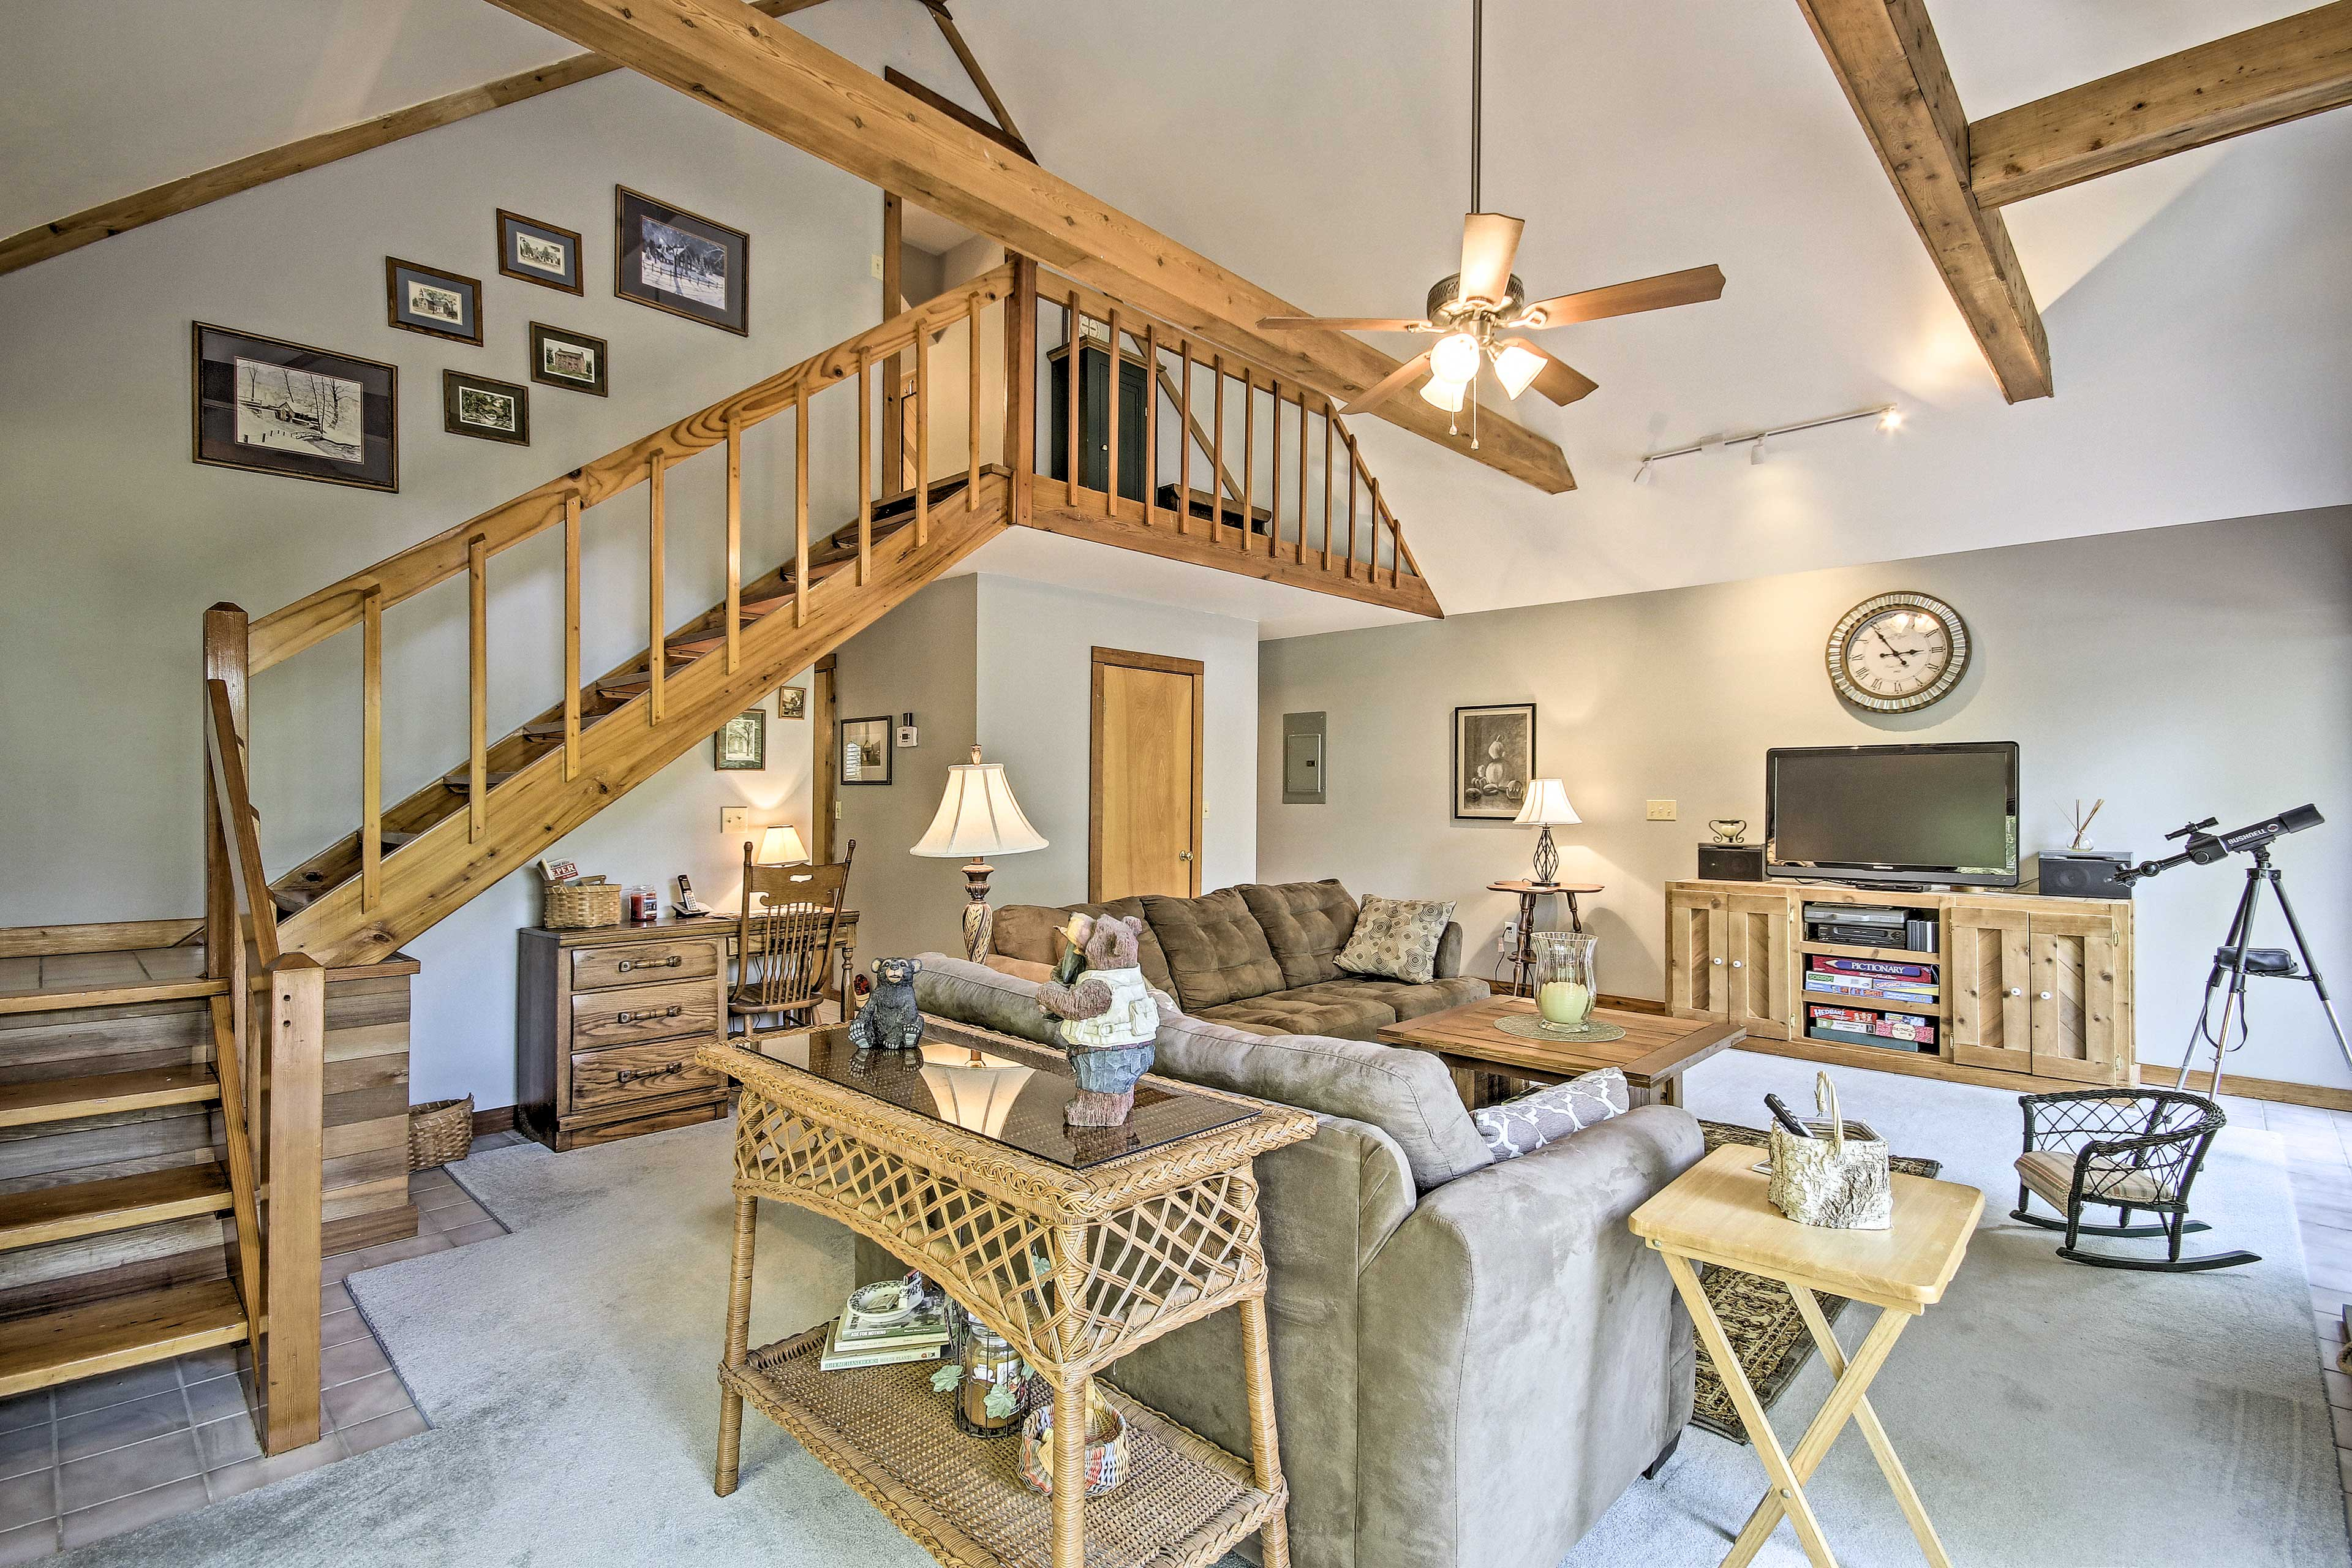 Whoever wins at Pictionary gets the master bedroom upstairs!